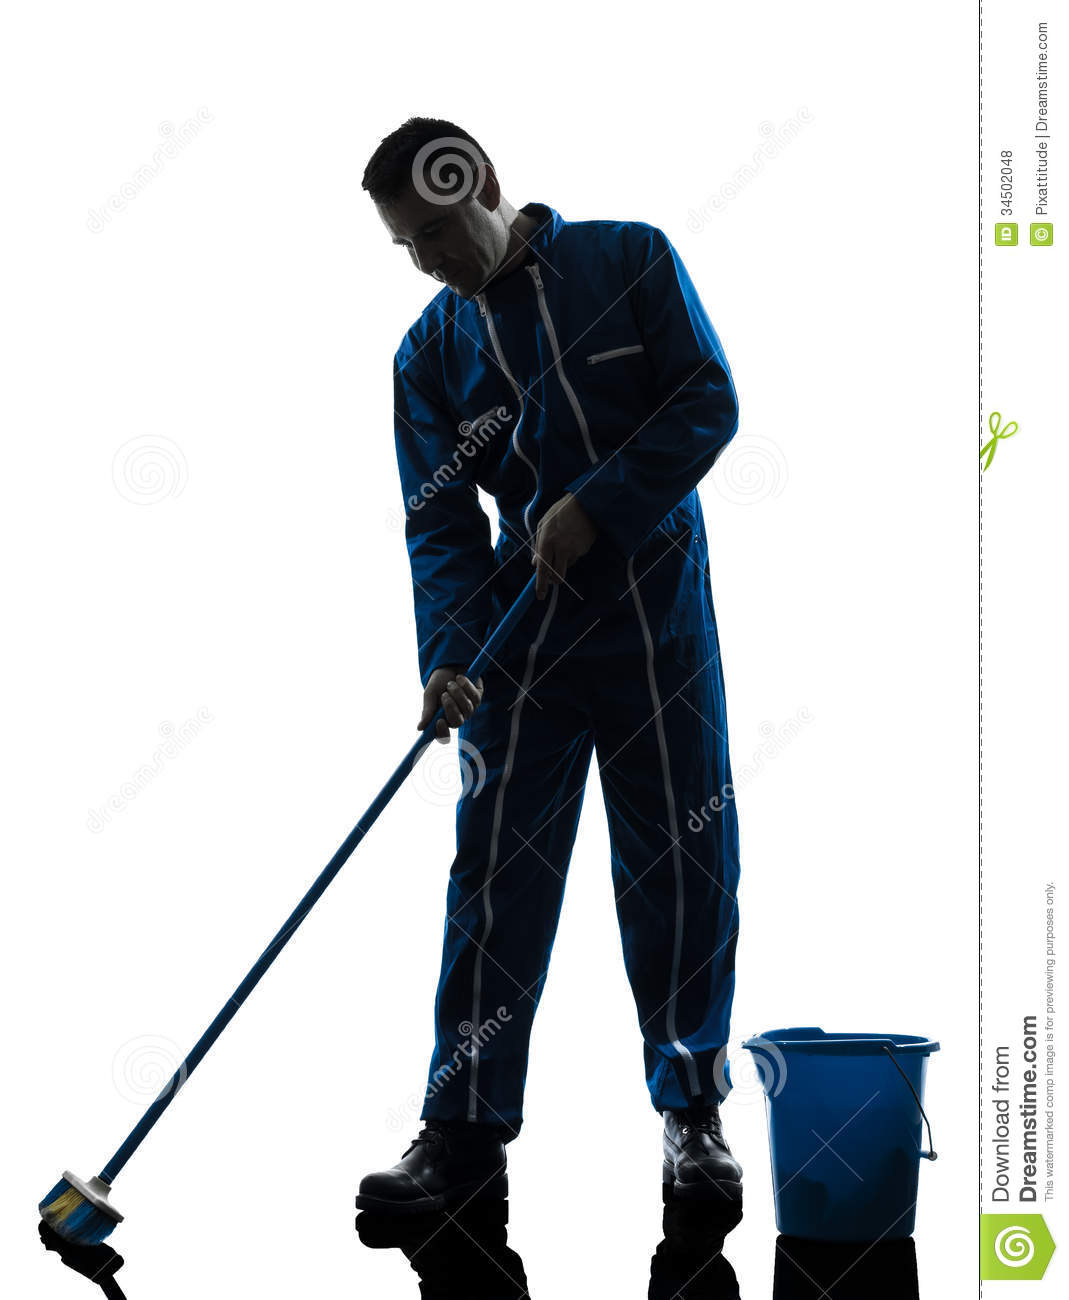 Man Janitor Cleaner Cleaning Silhouette Royalty Free Stock